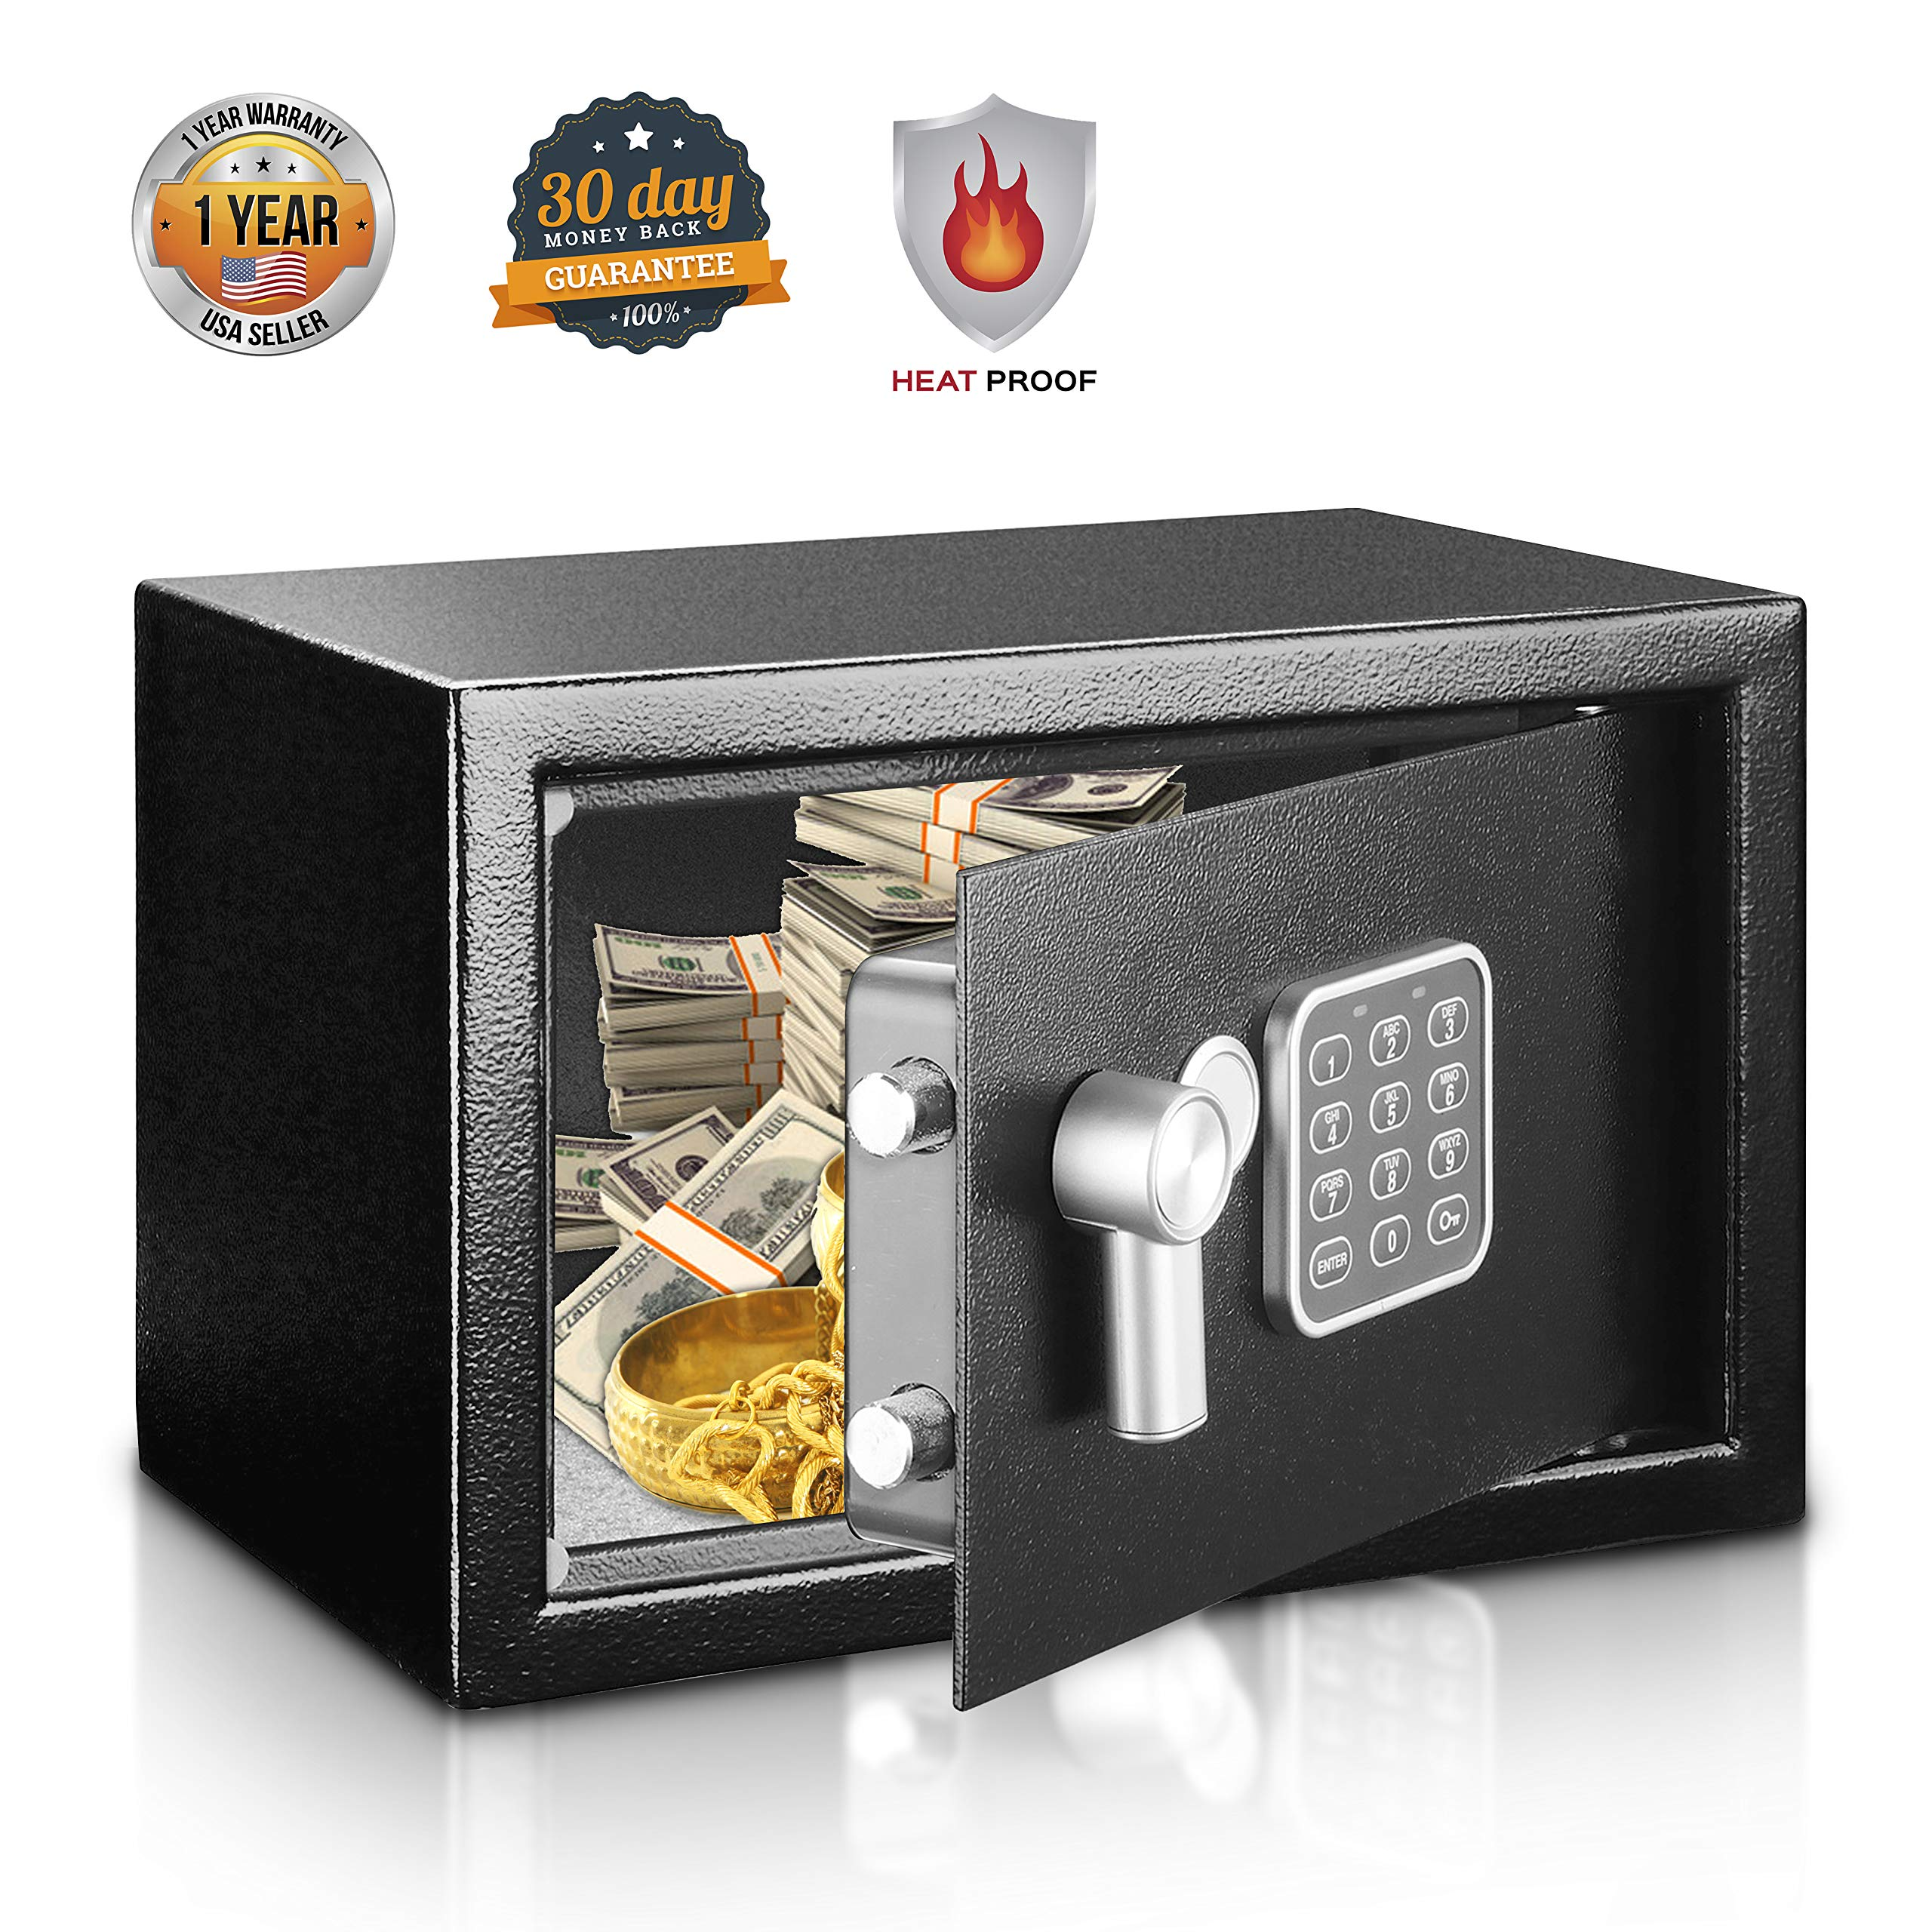 Safe and Lock Box - Safe Box, Safes And Lock Boxes, Money Box, Safety Boxes for Home, Digital Safe Box, Steel Alloy Drop Safe, Includes Keys- SereneLife SLSFE14 by SereneLife